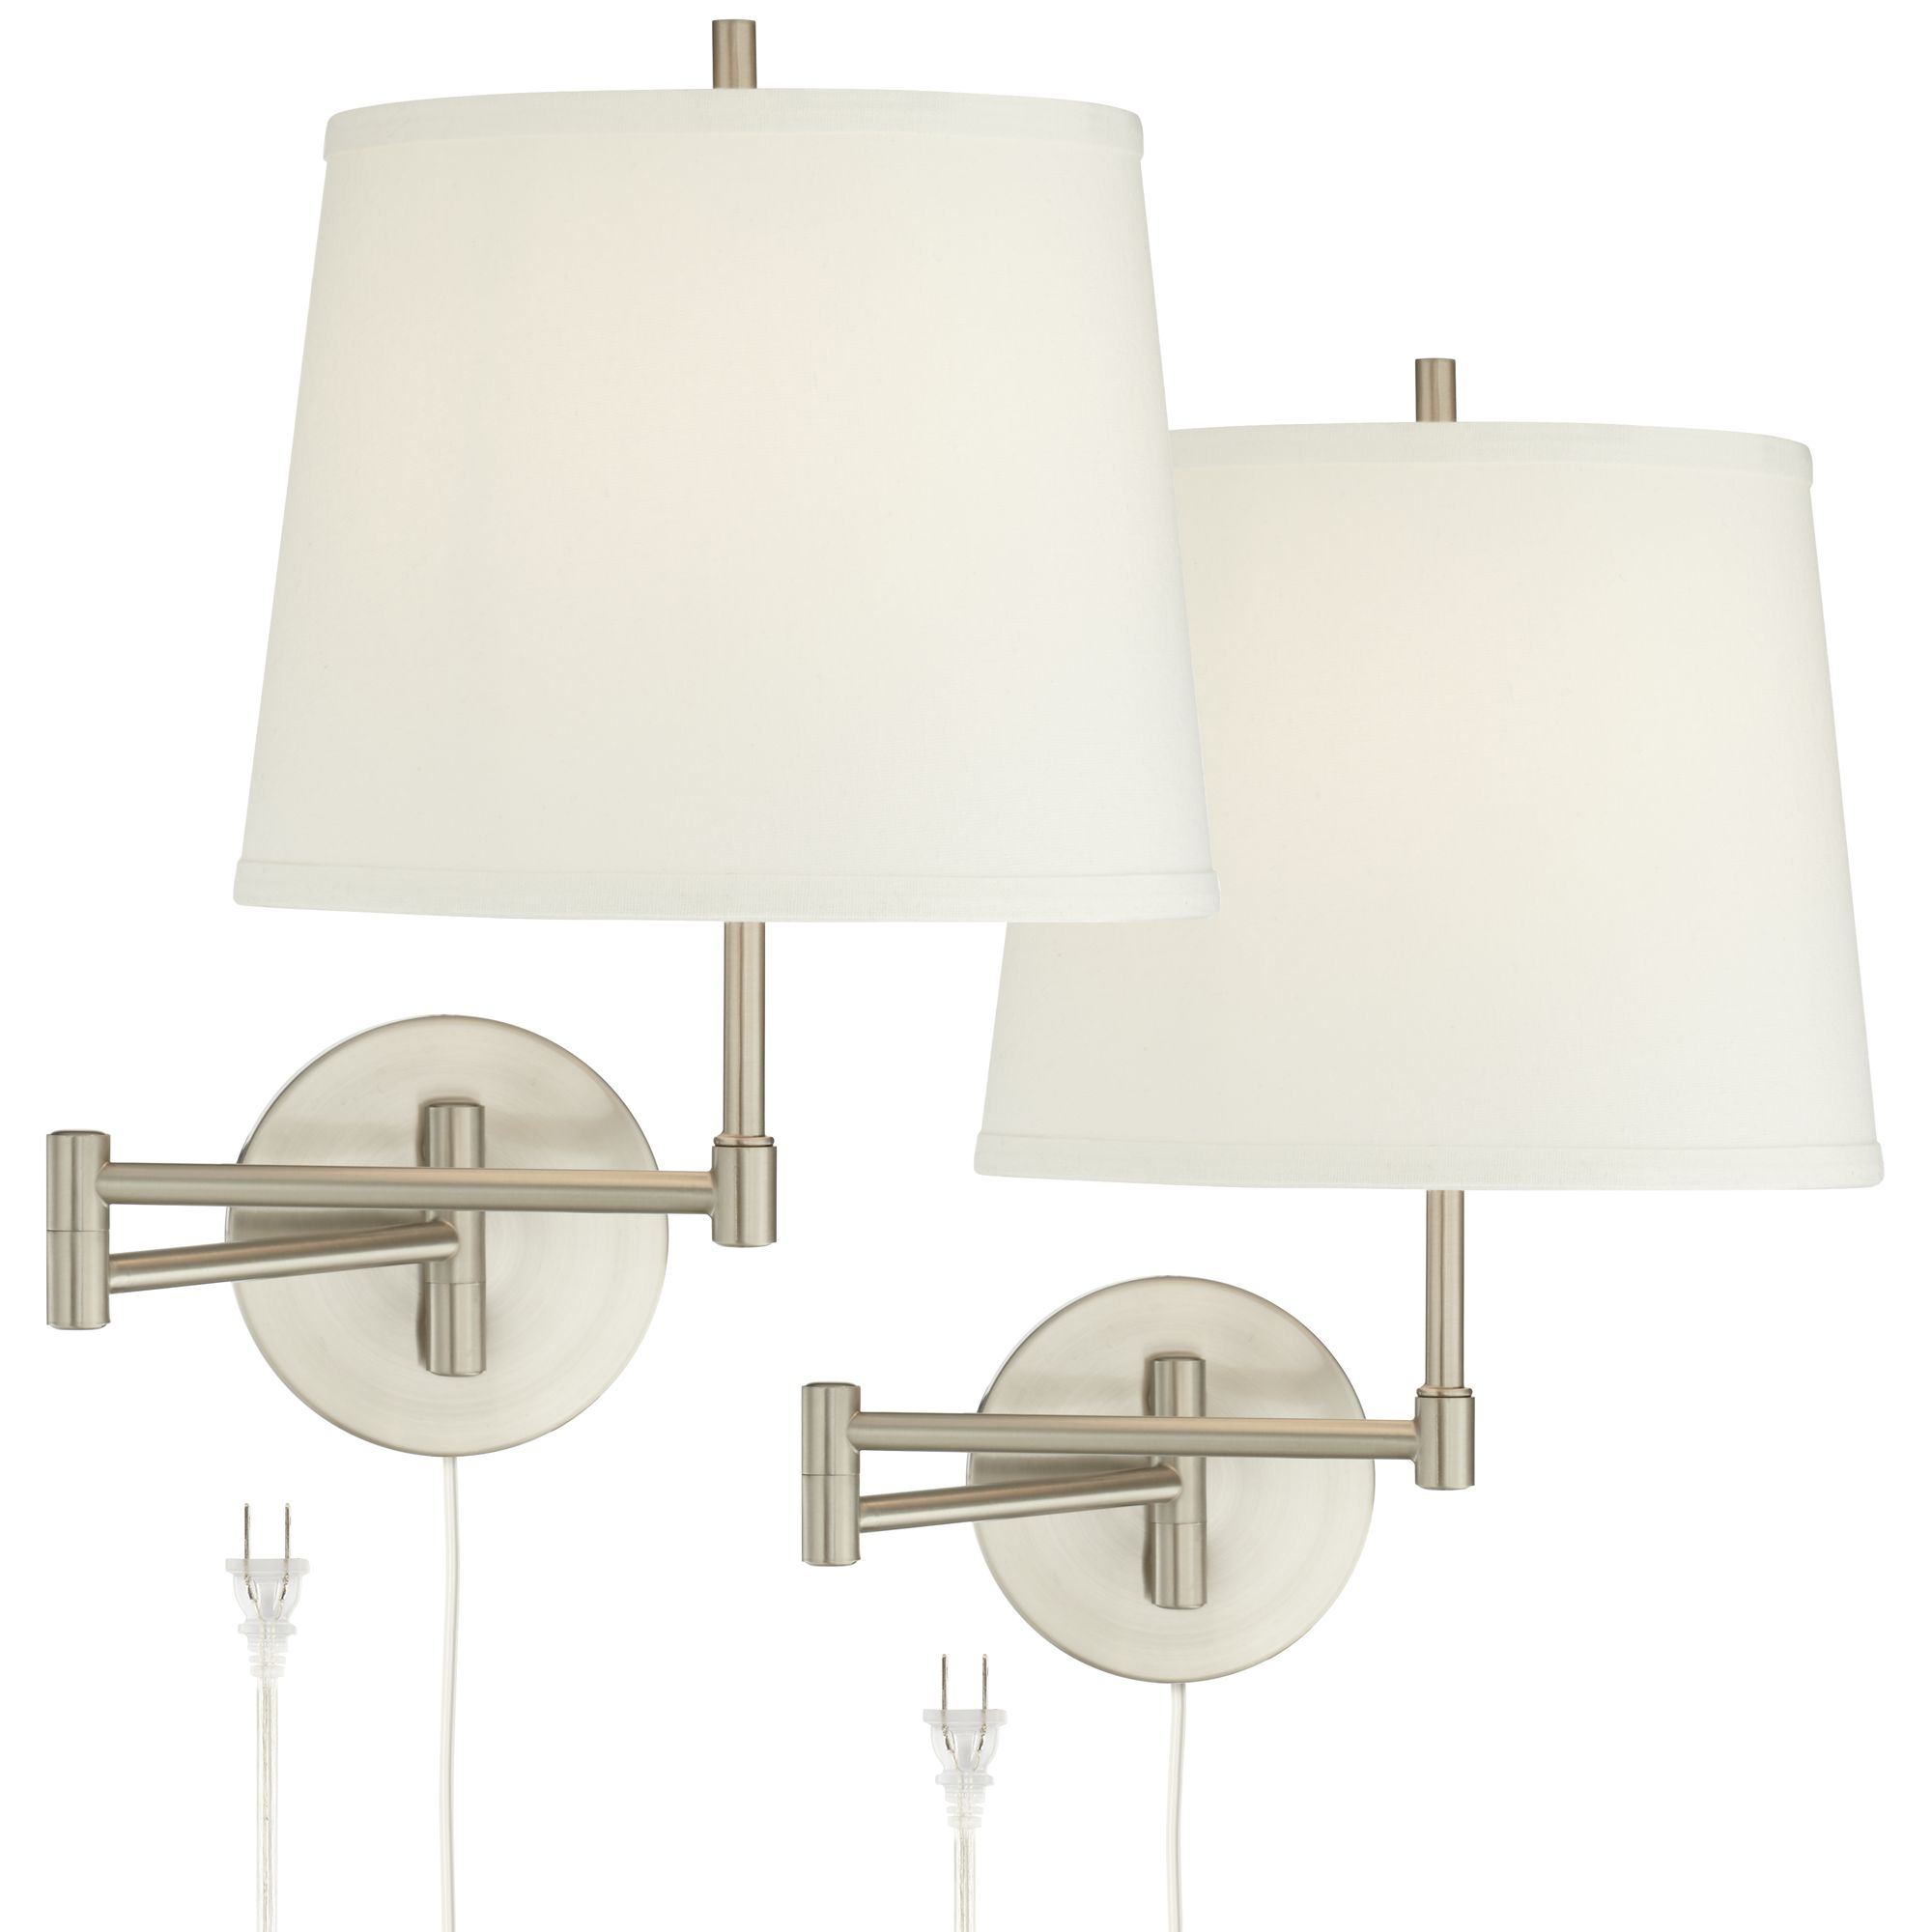 Swing Arm Wall Lamp Designs Swing Arms For Bedroom Reading